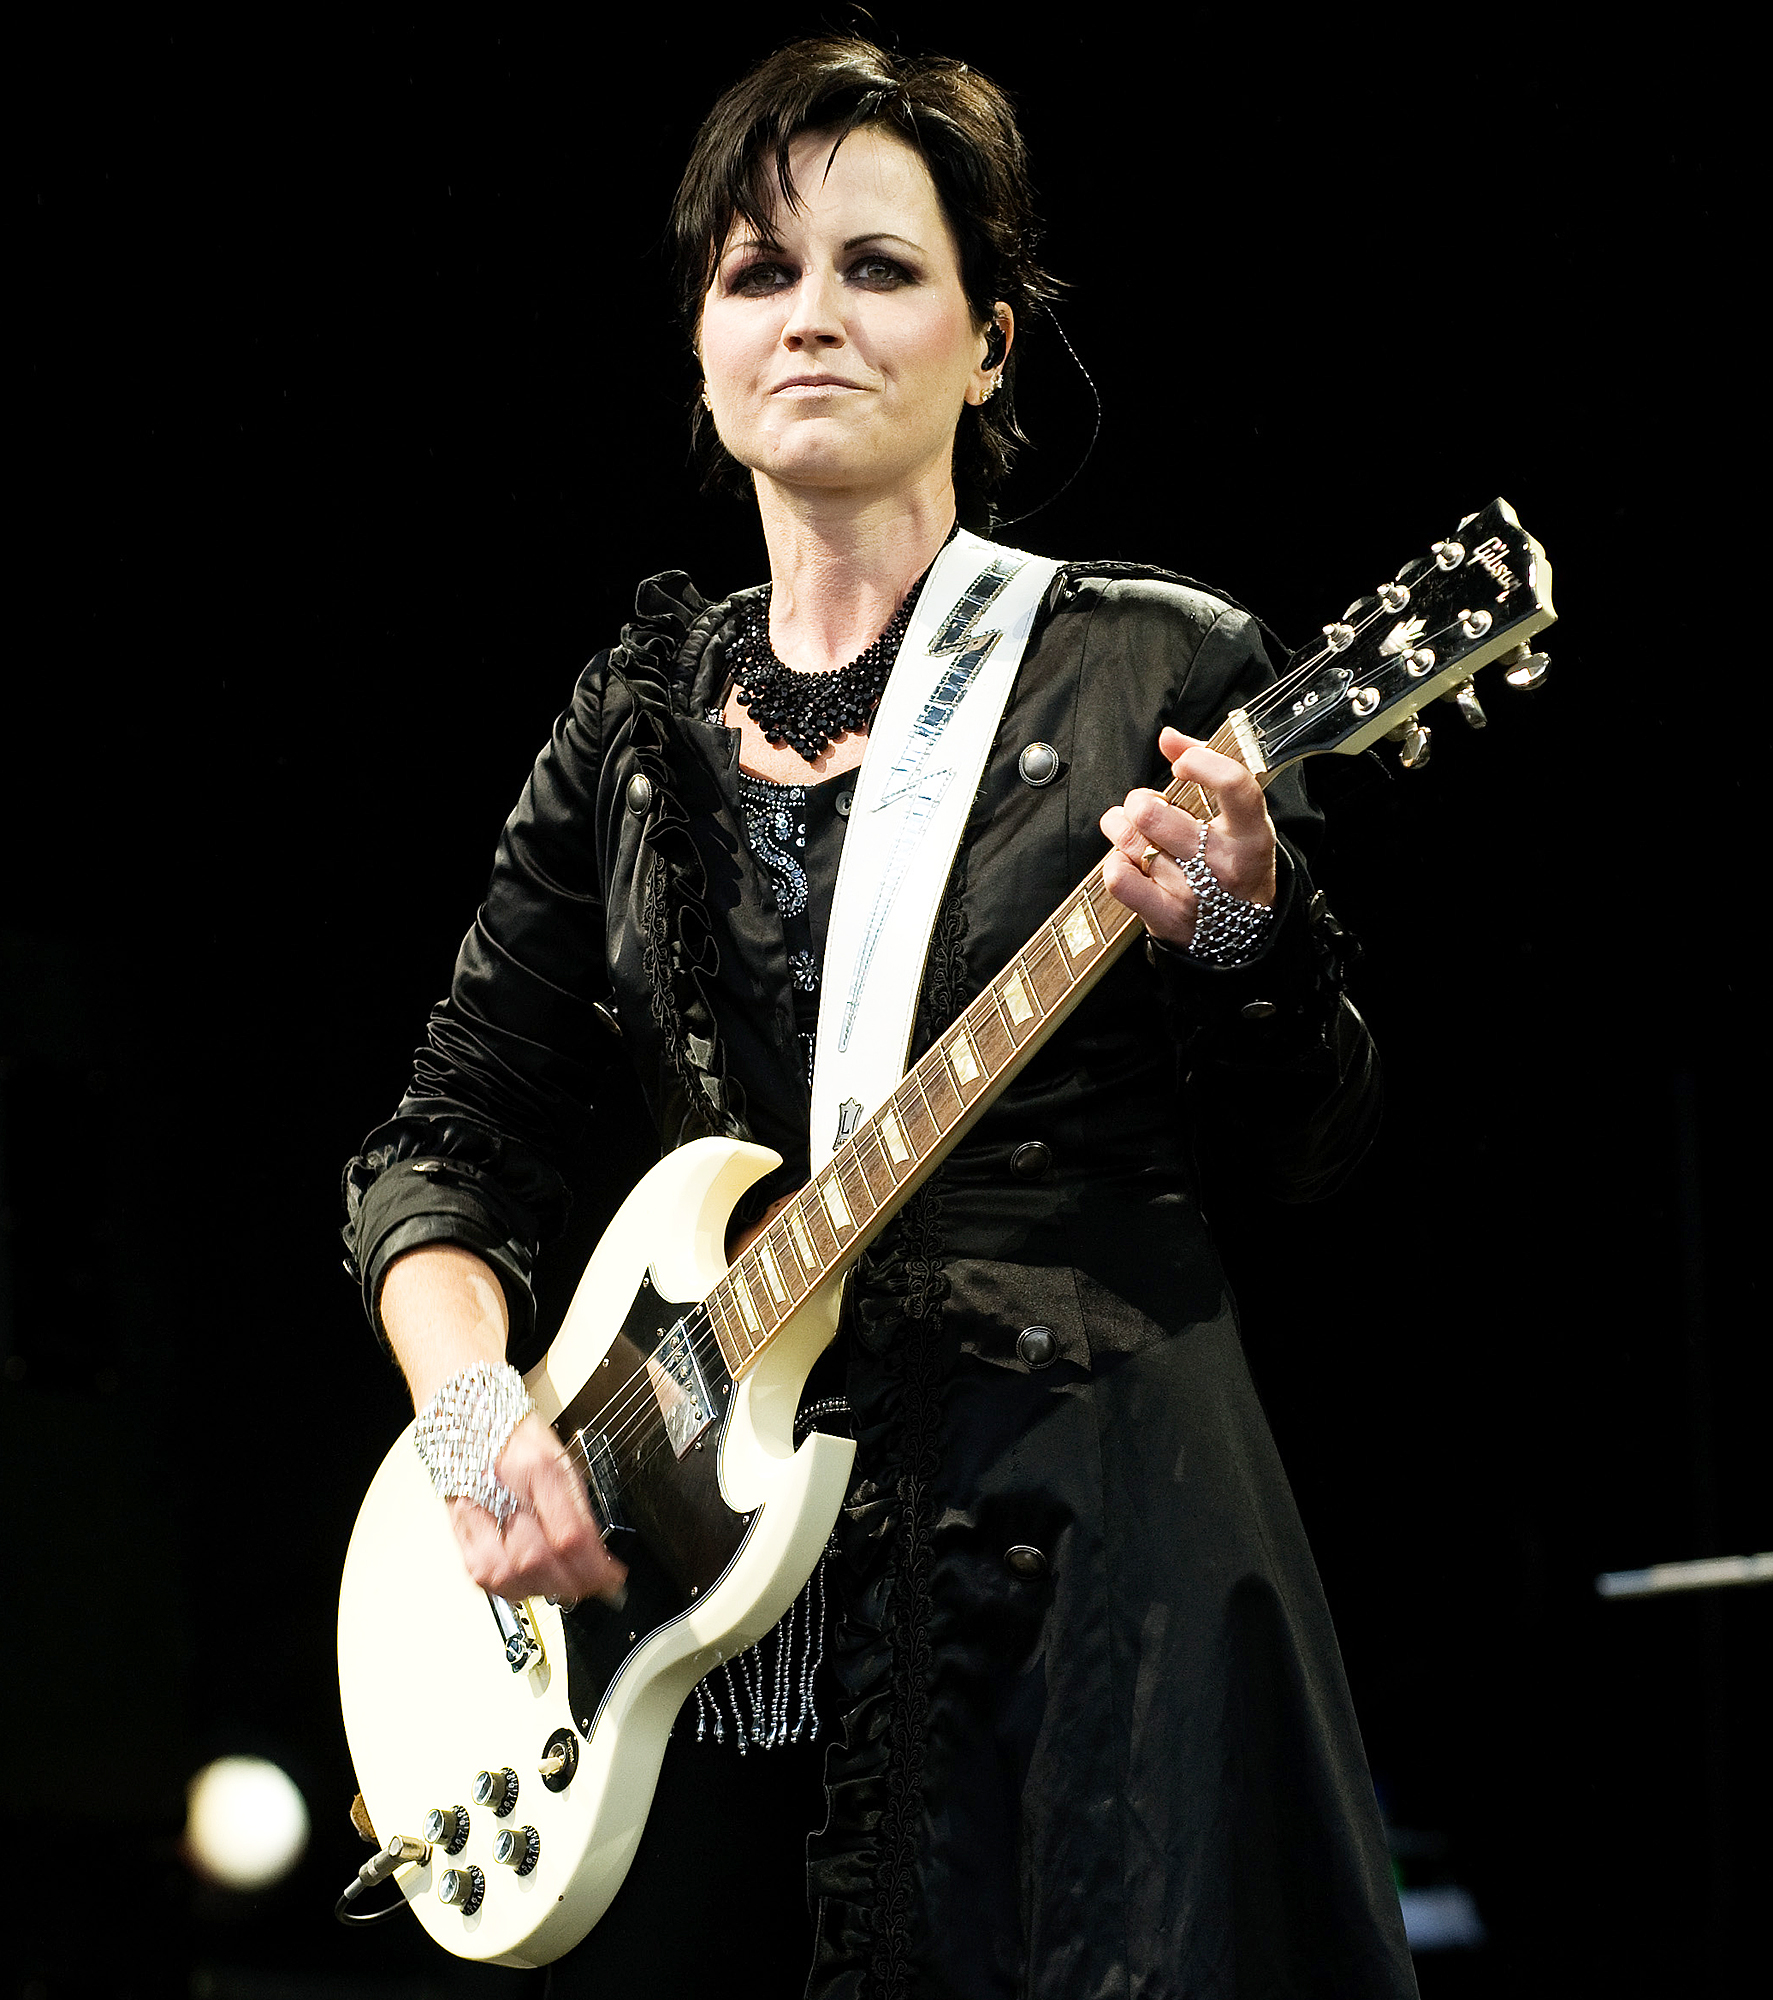 Dolores O'Riordan Cause Of Death Drowned While Drinking